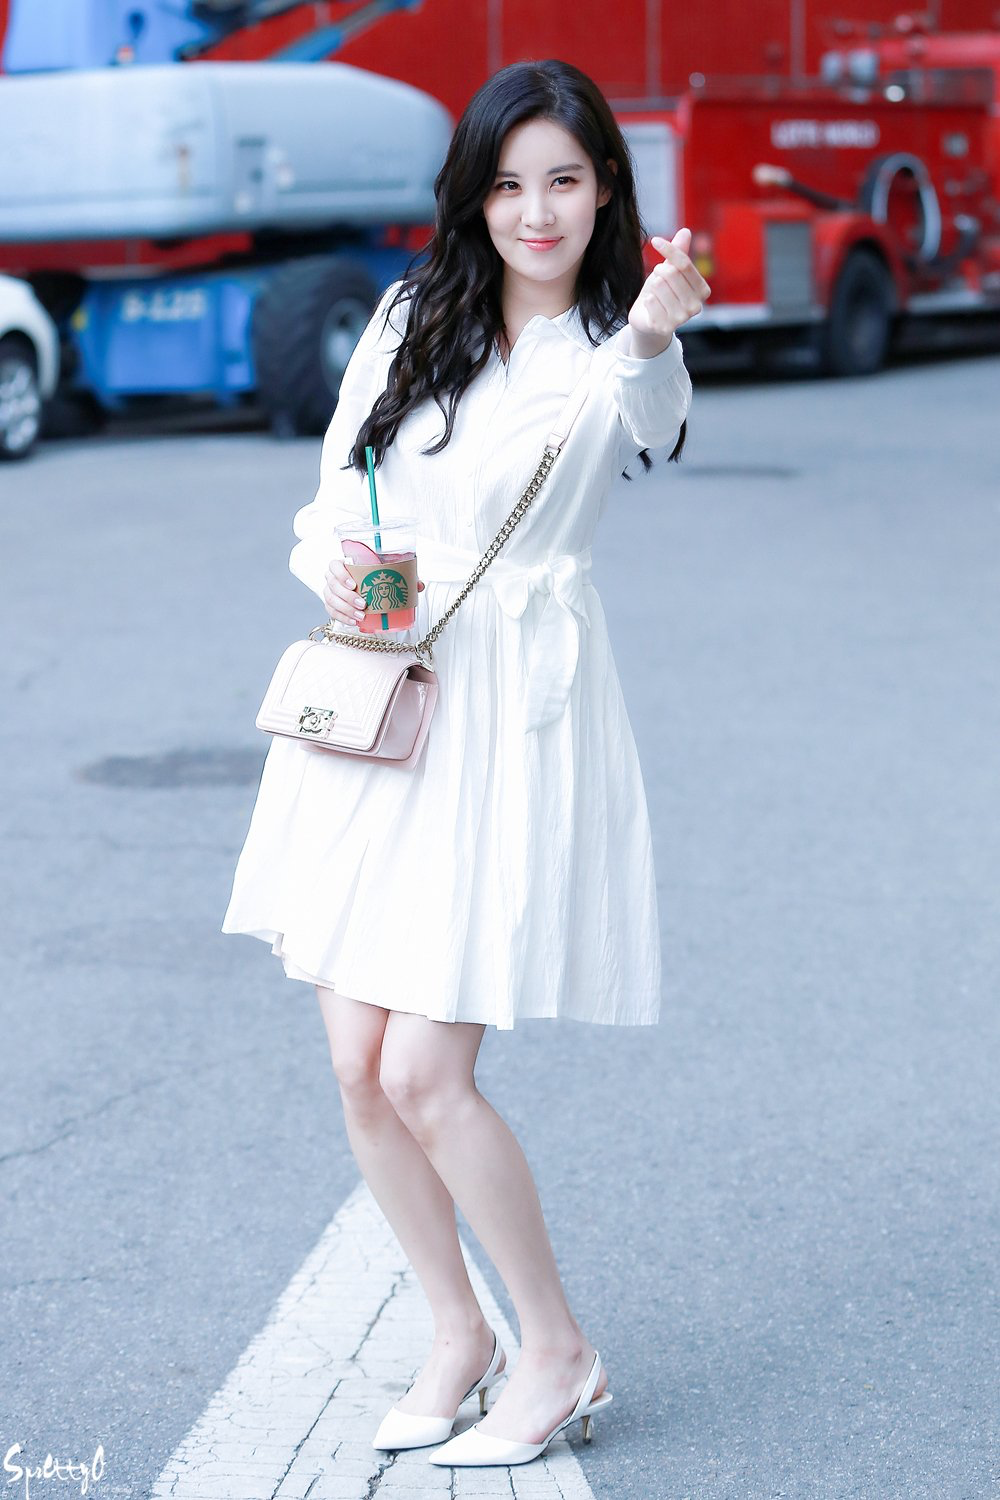 Seo Ju-hyun (서주현) also known mononymously as Seohyun (서현) of Girls' Generation (소녀시대). || She's such an angel. ❤❤